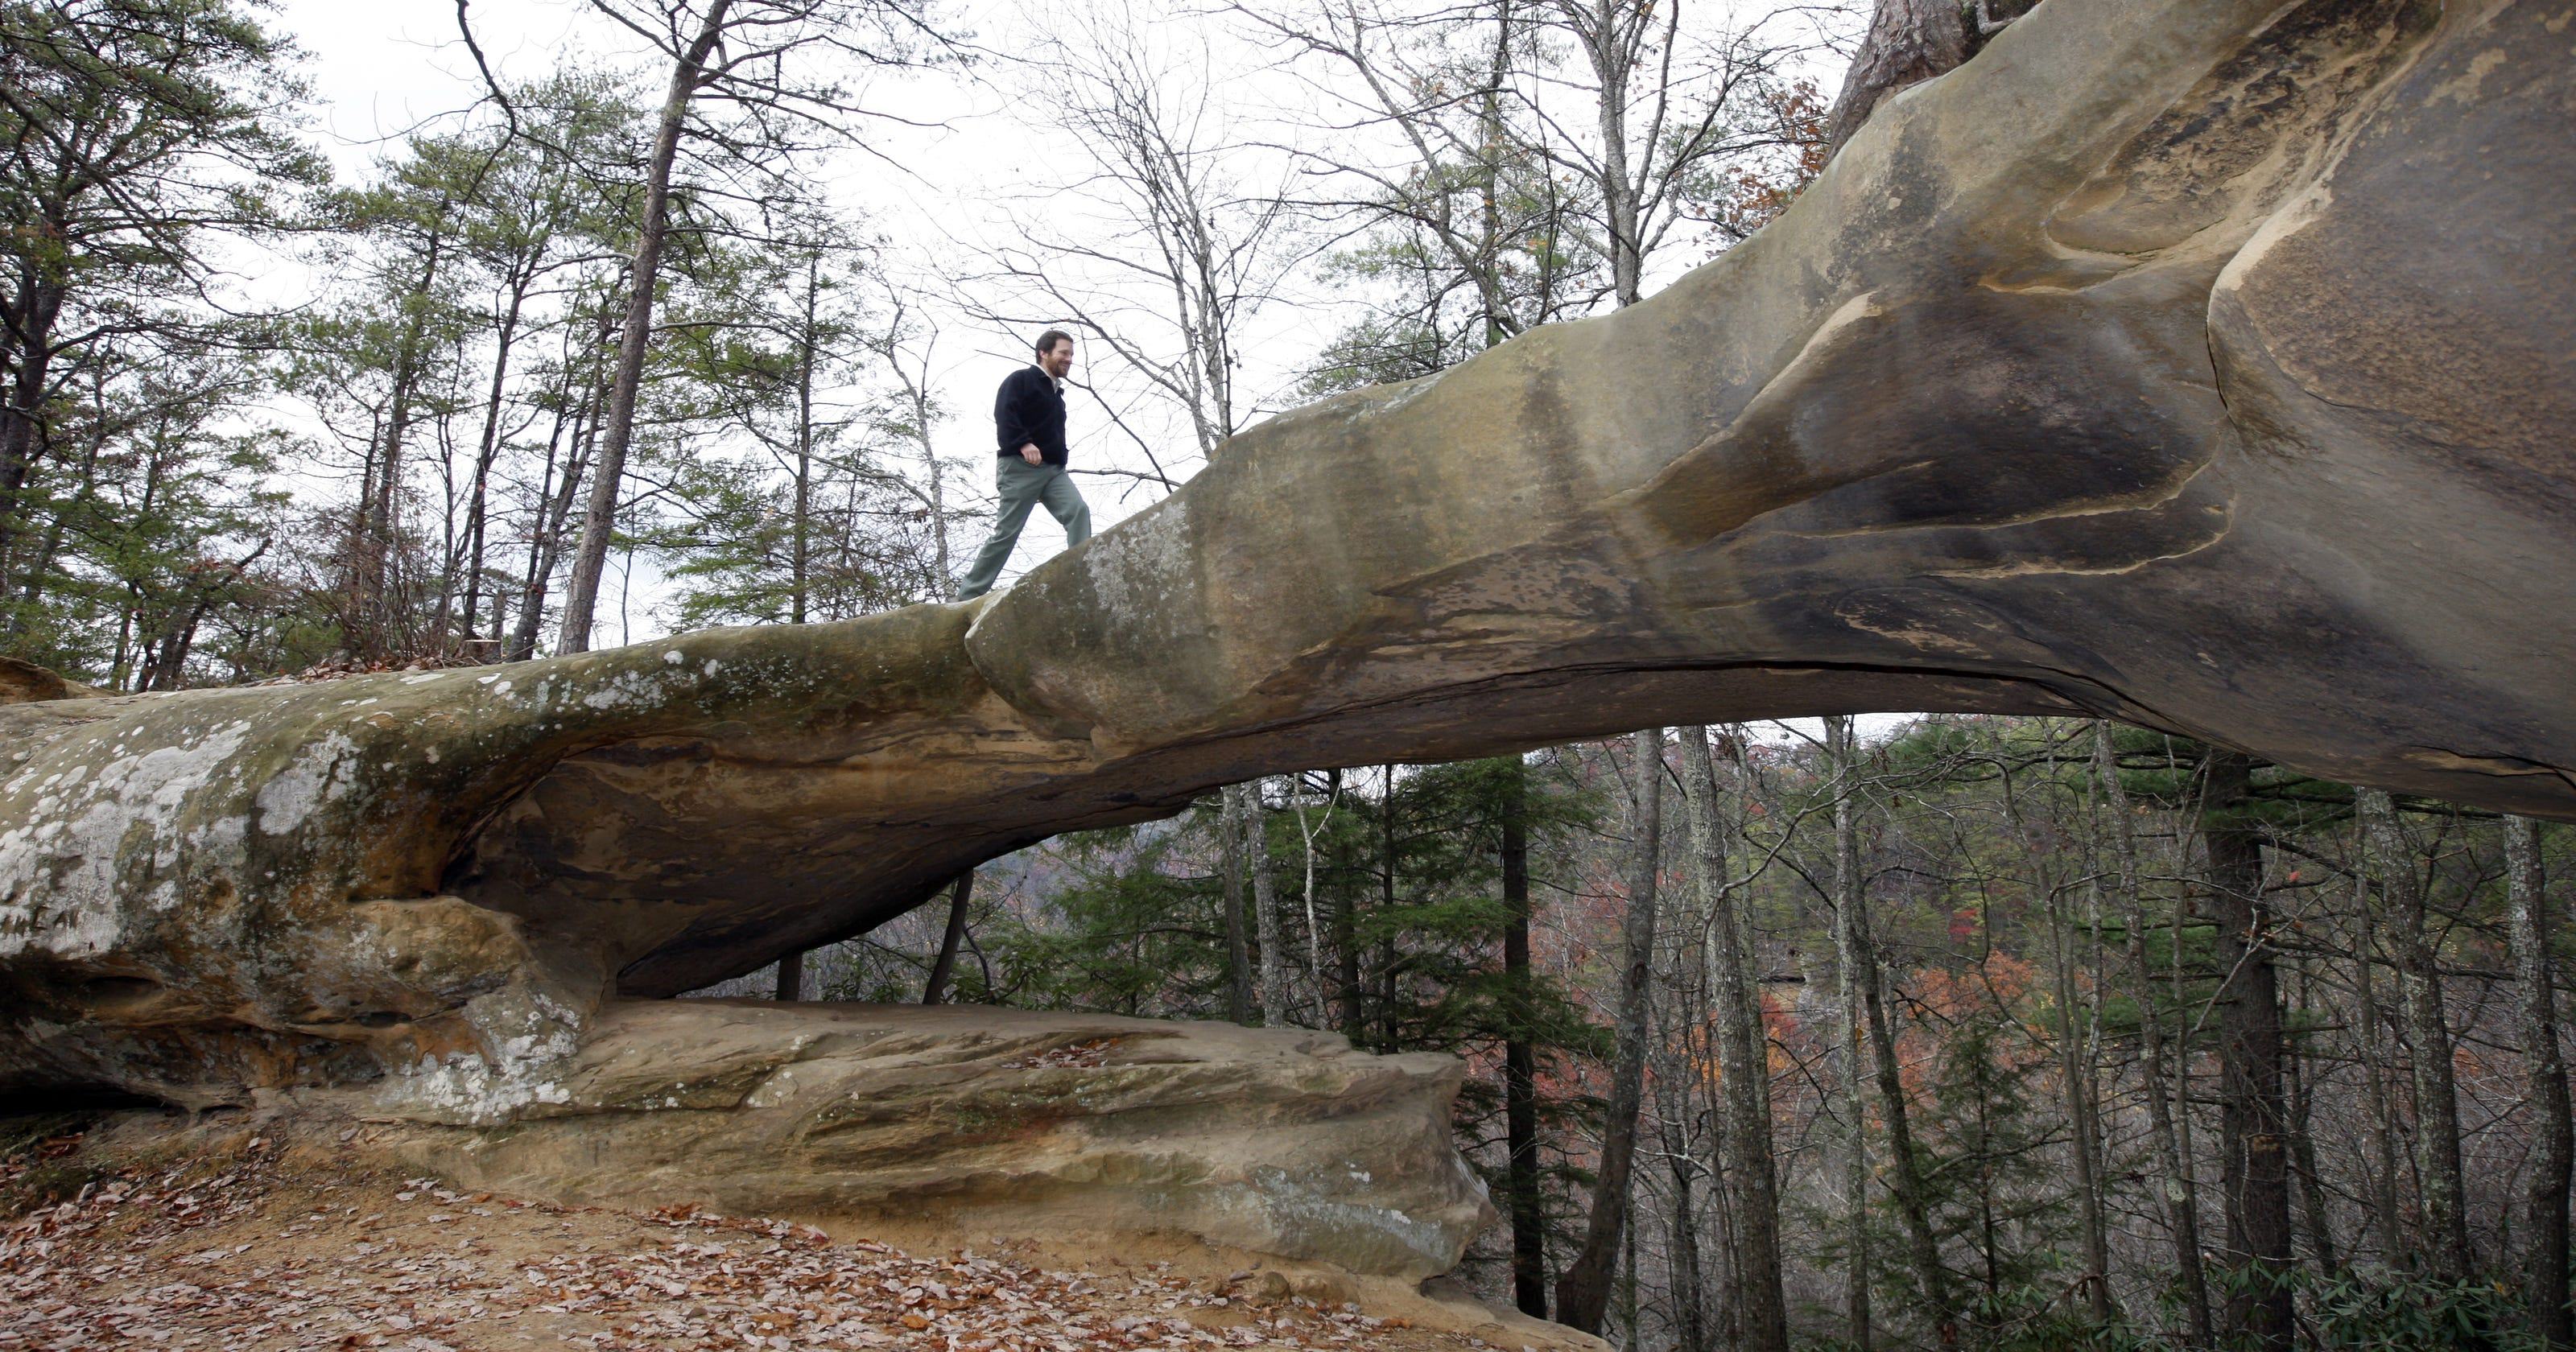 camper 39 s body found nky man passionate about red river gorge. Black Bedroom Furniture Sets. Home Design Ideas